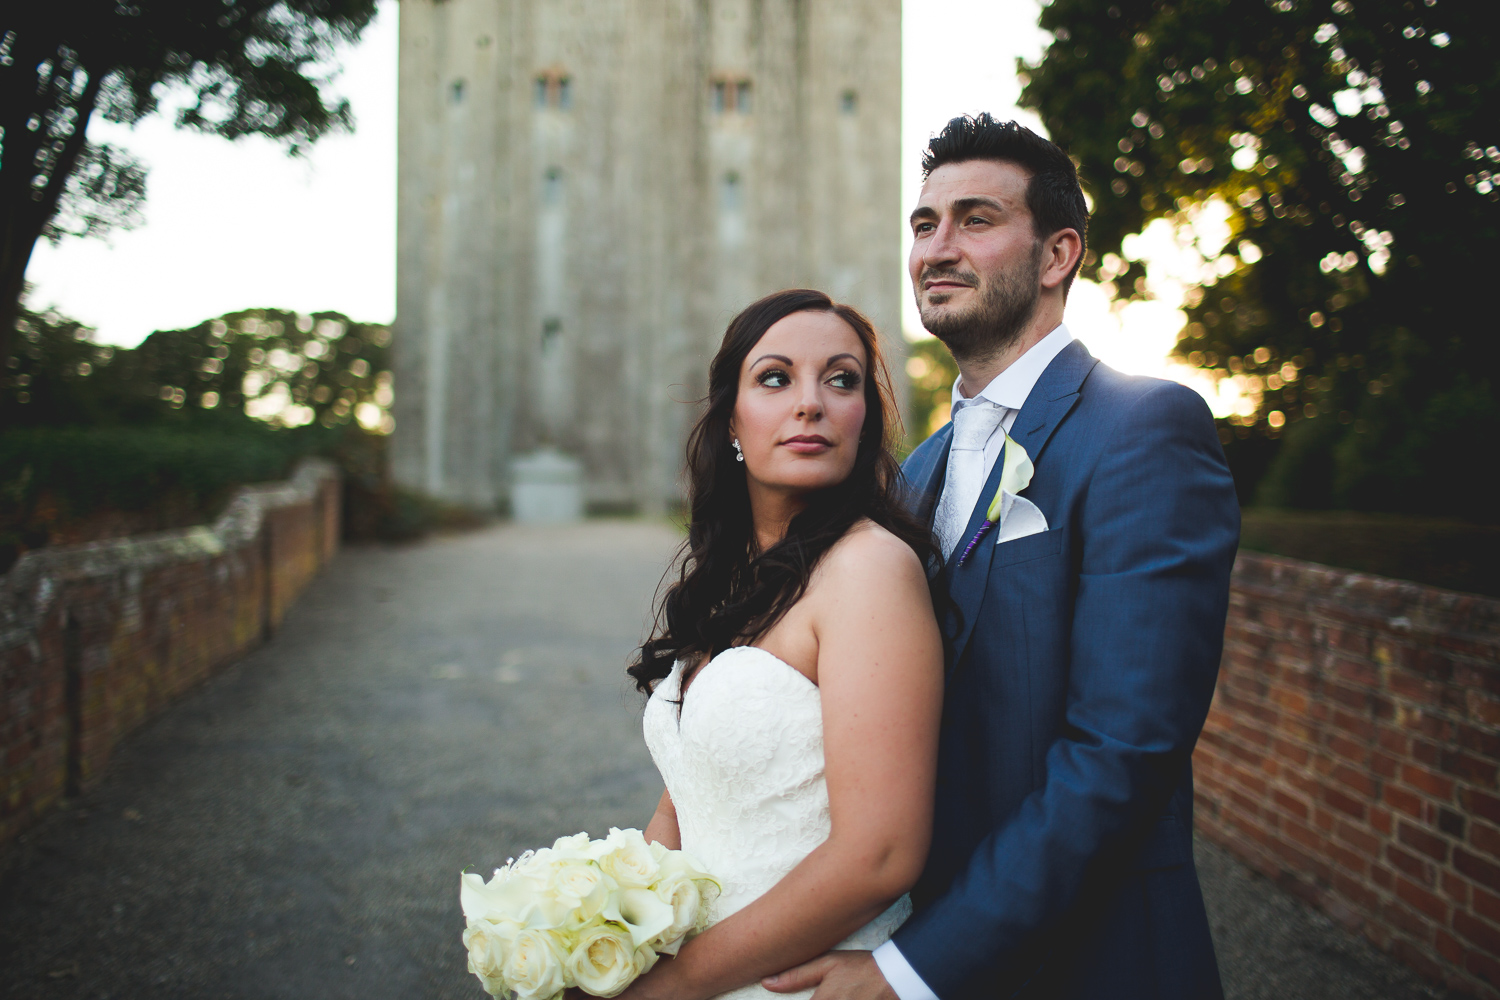 Surrey Wedding Photographer Hedingham Castle089.jpg